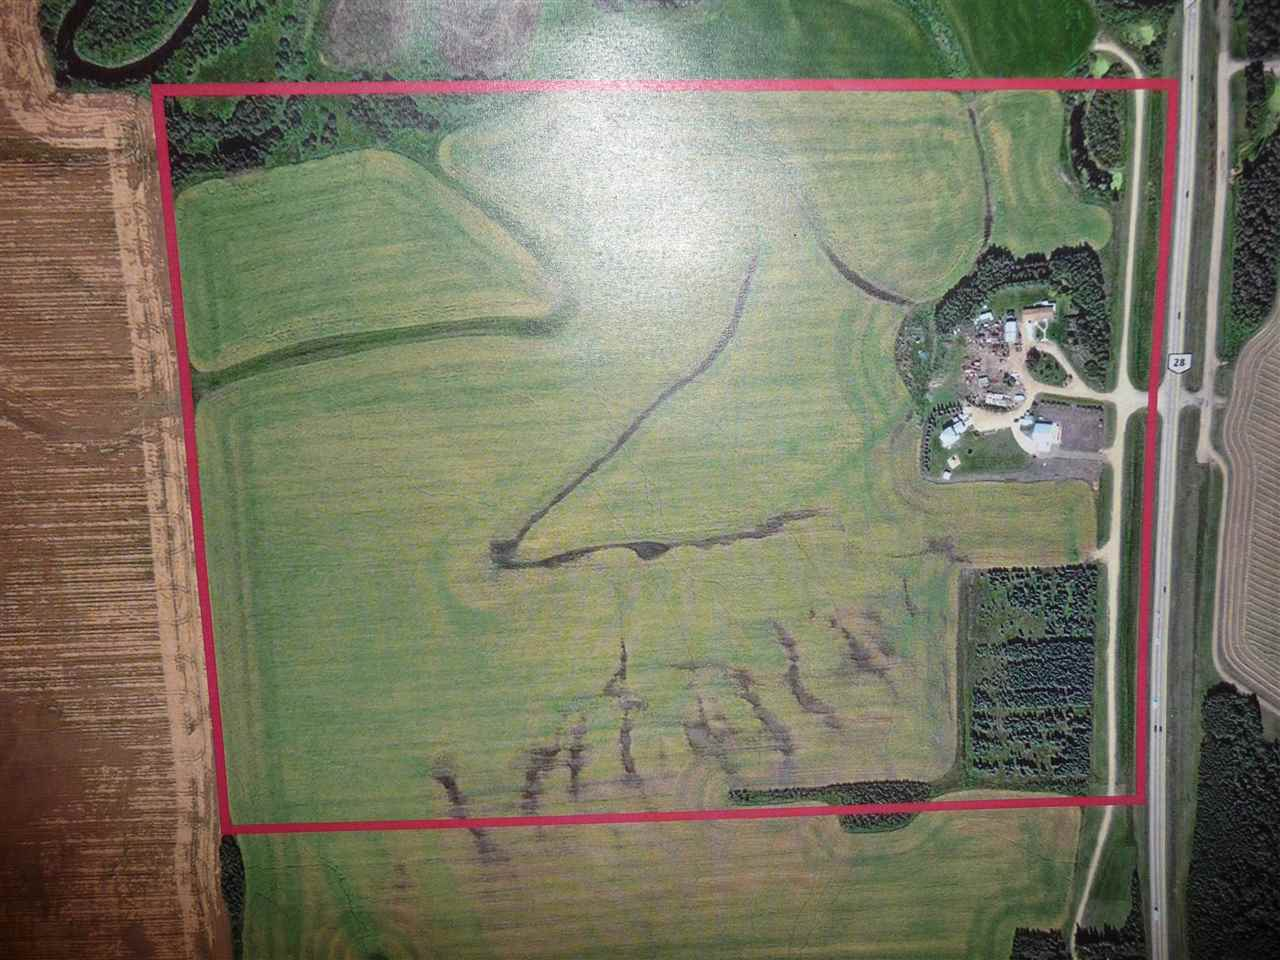 Main Photo: 55028 - HWY 28 STURGEON COUNTY: Rural Sturgeon County Rural Land/Vacant Lot for sale : MLS®# E4070055